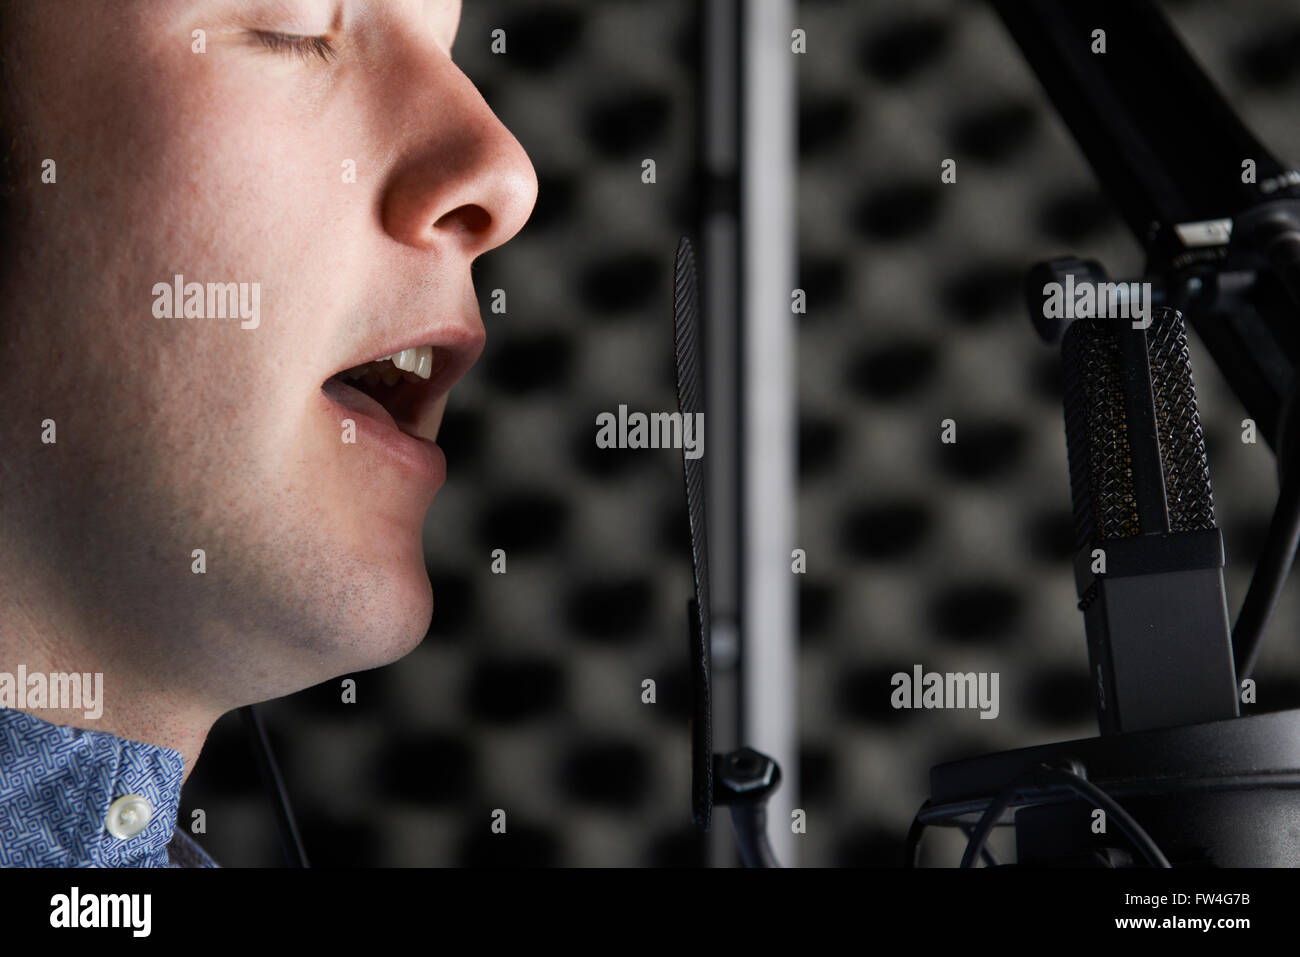 Male Vocalist With Microphone In Recording Studio - Stock Image